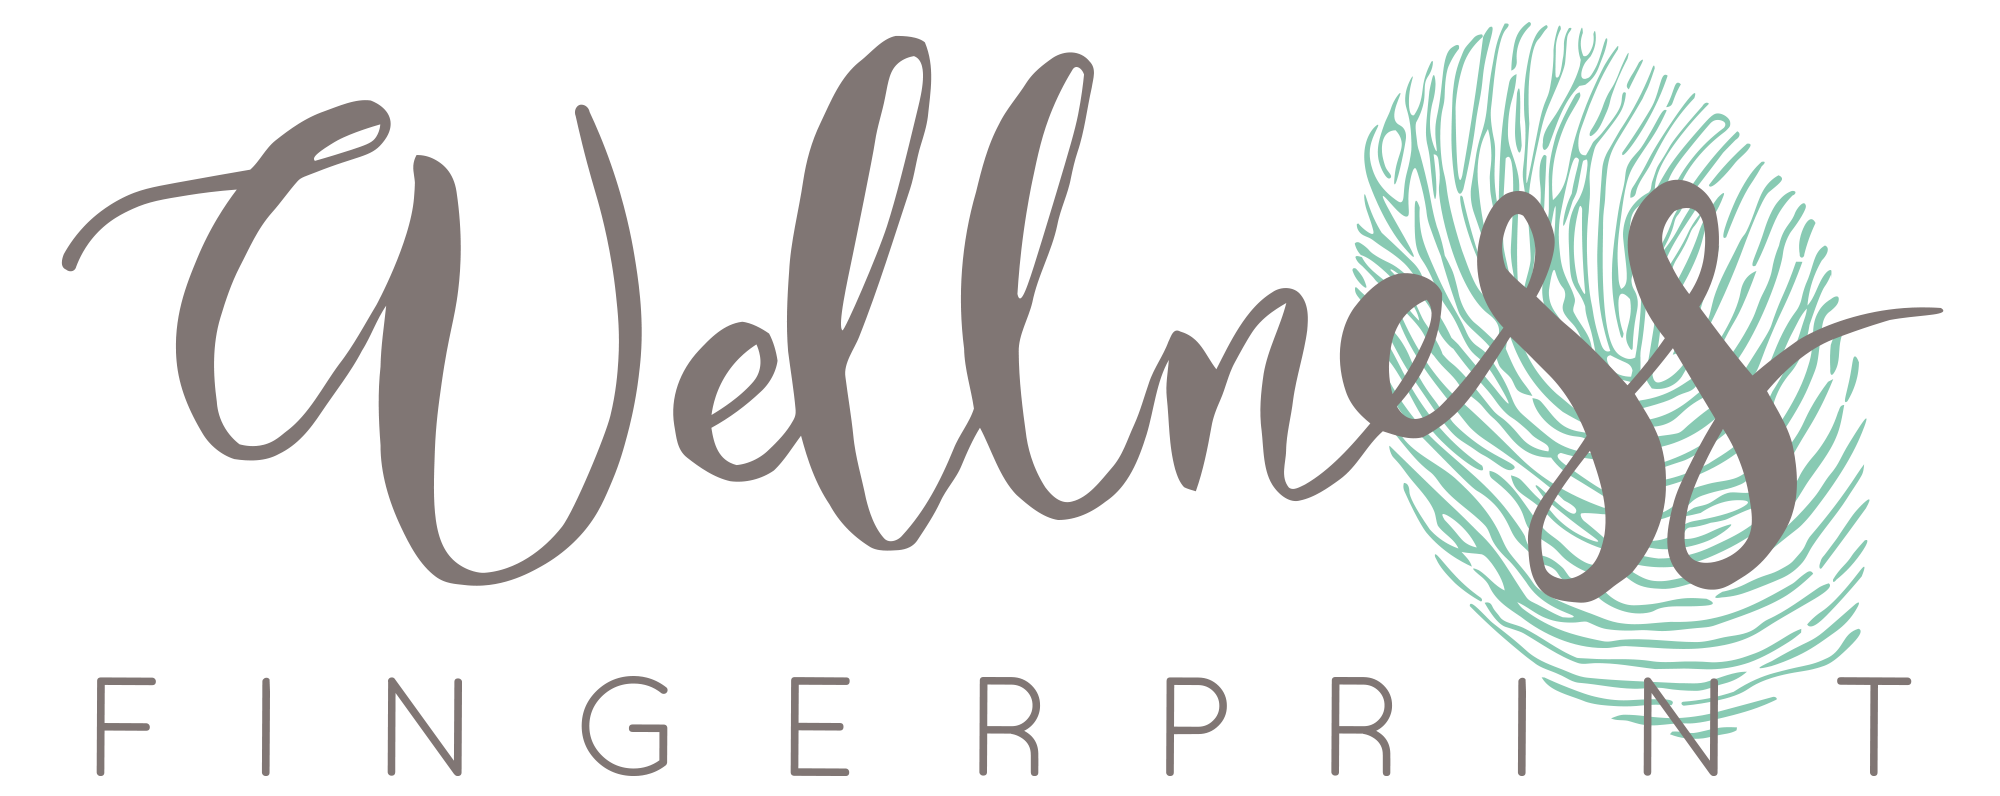 wellness fingerprint logo